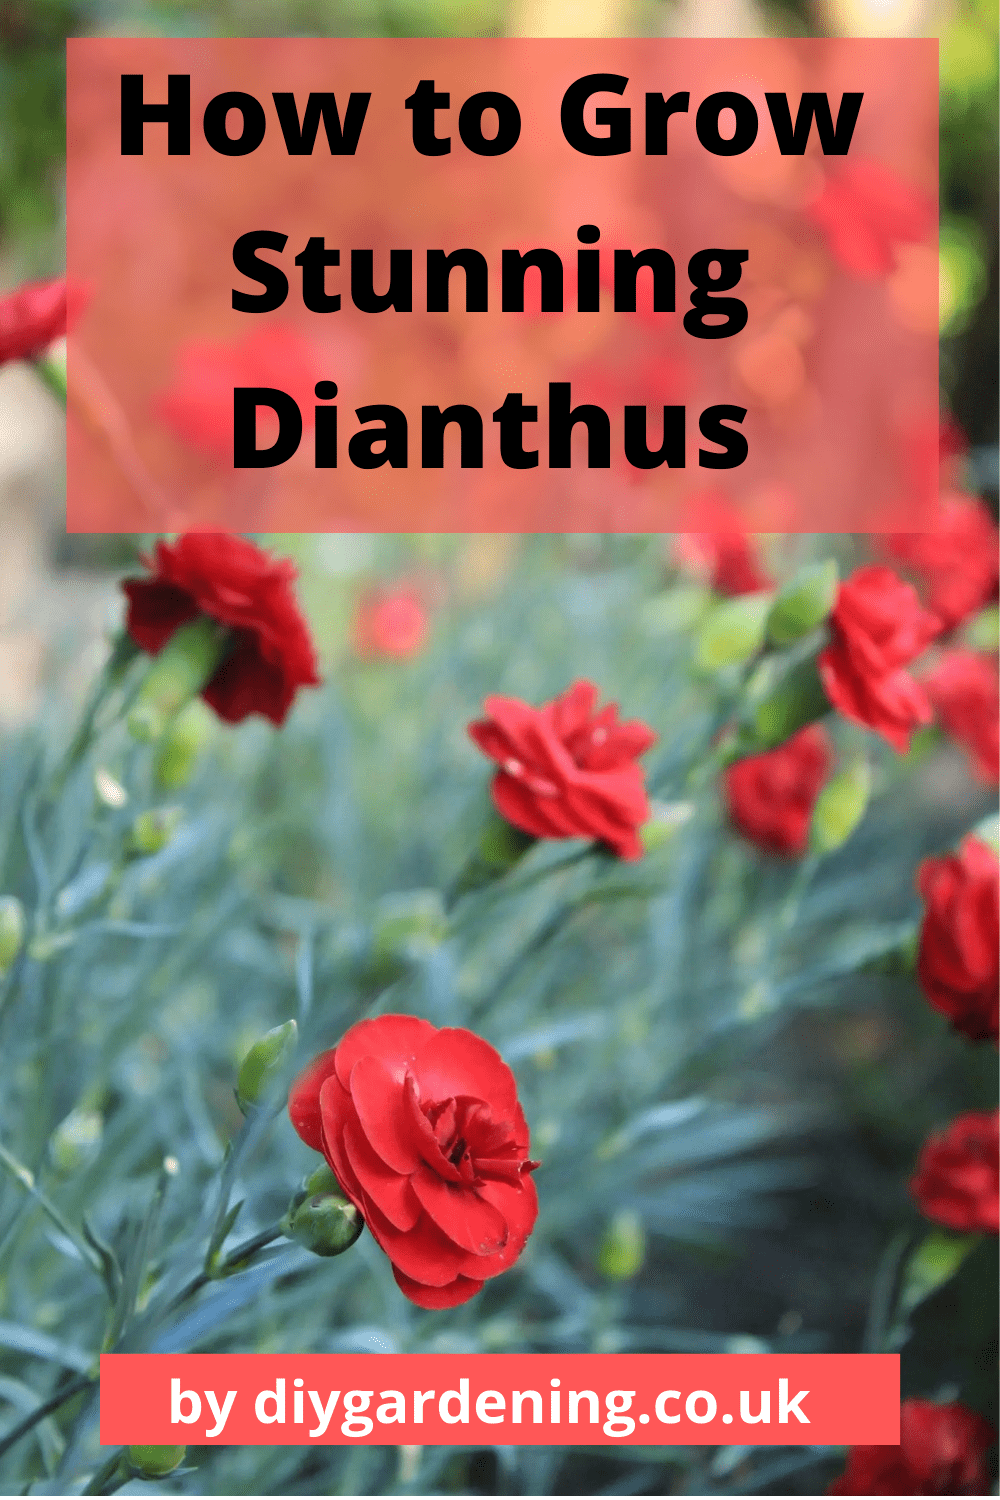 How to Grow Stunning Dianthus